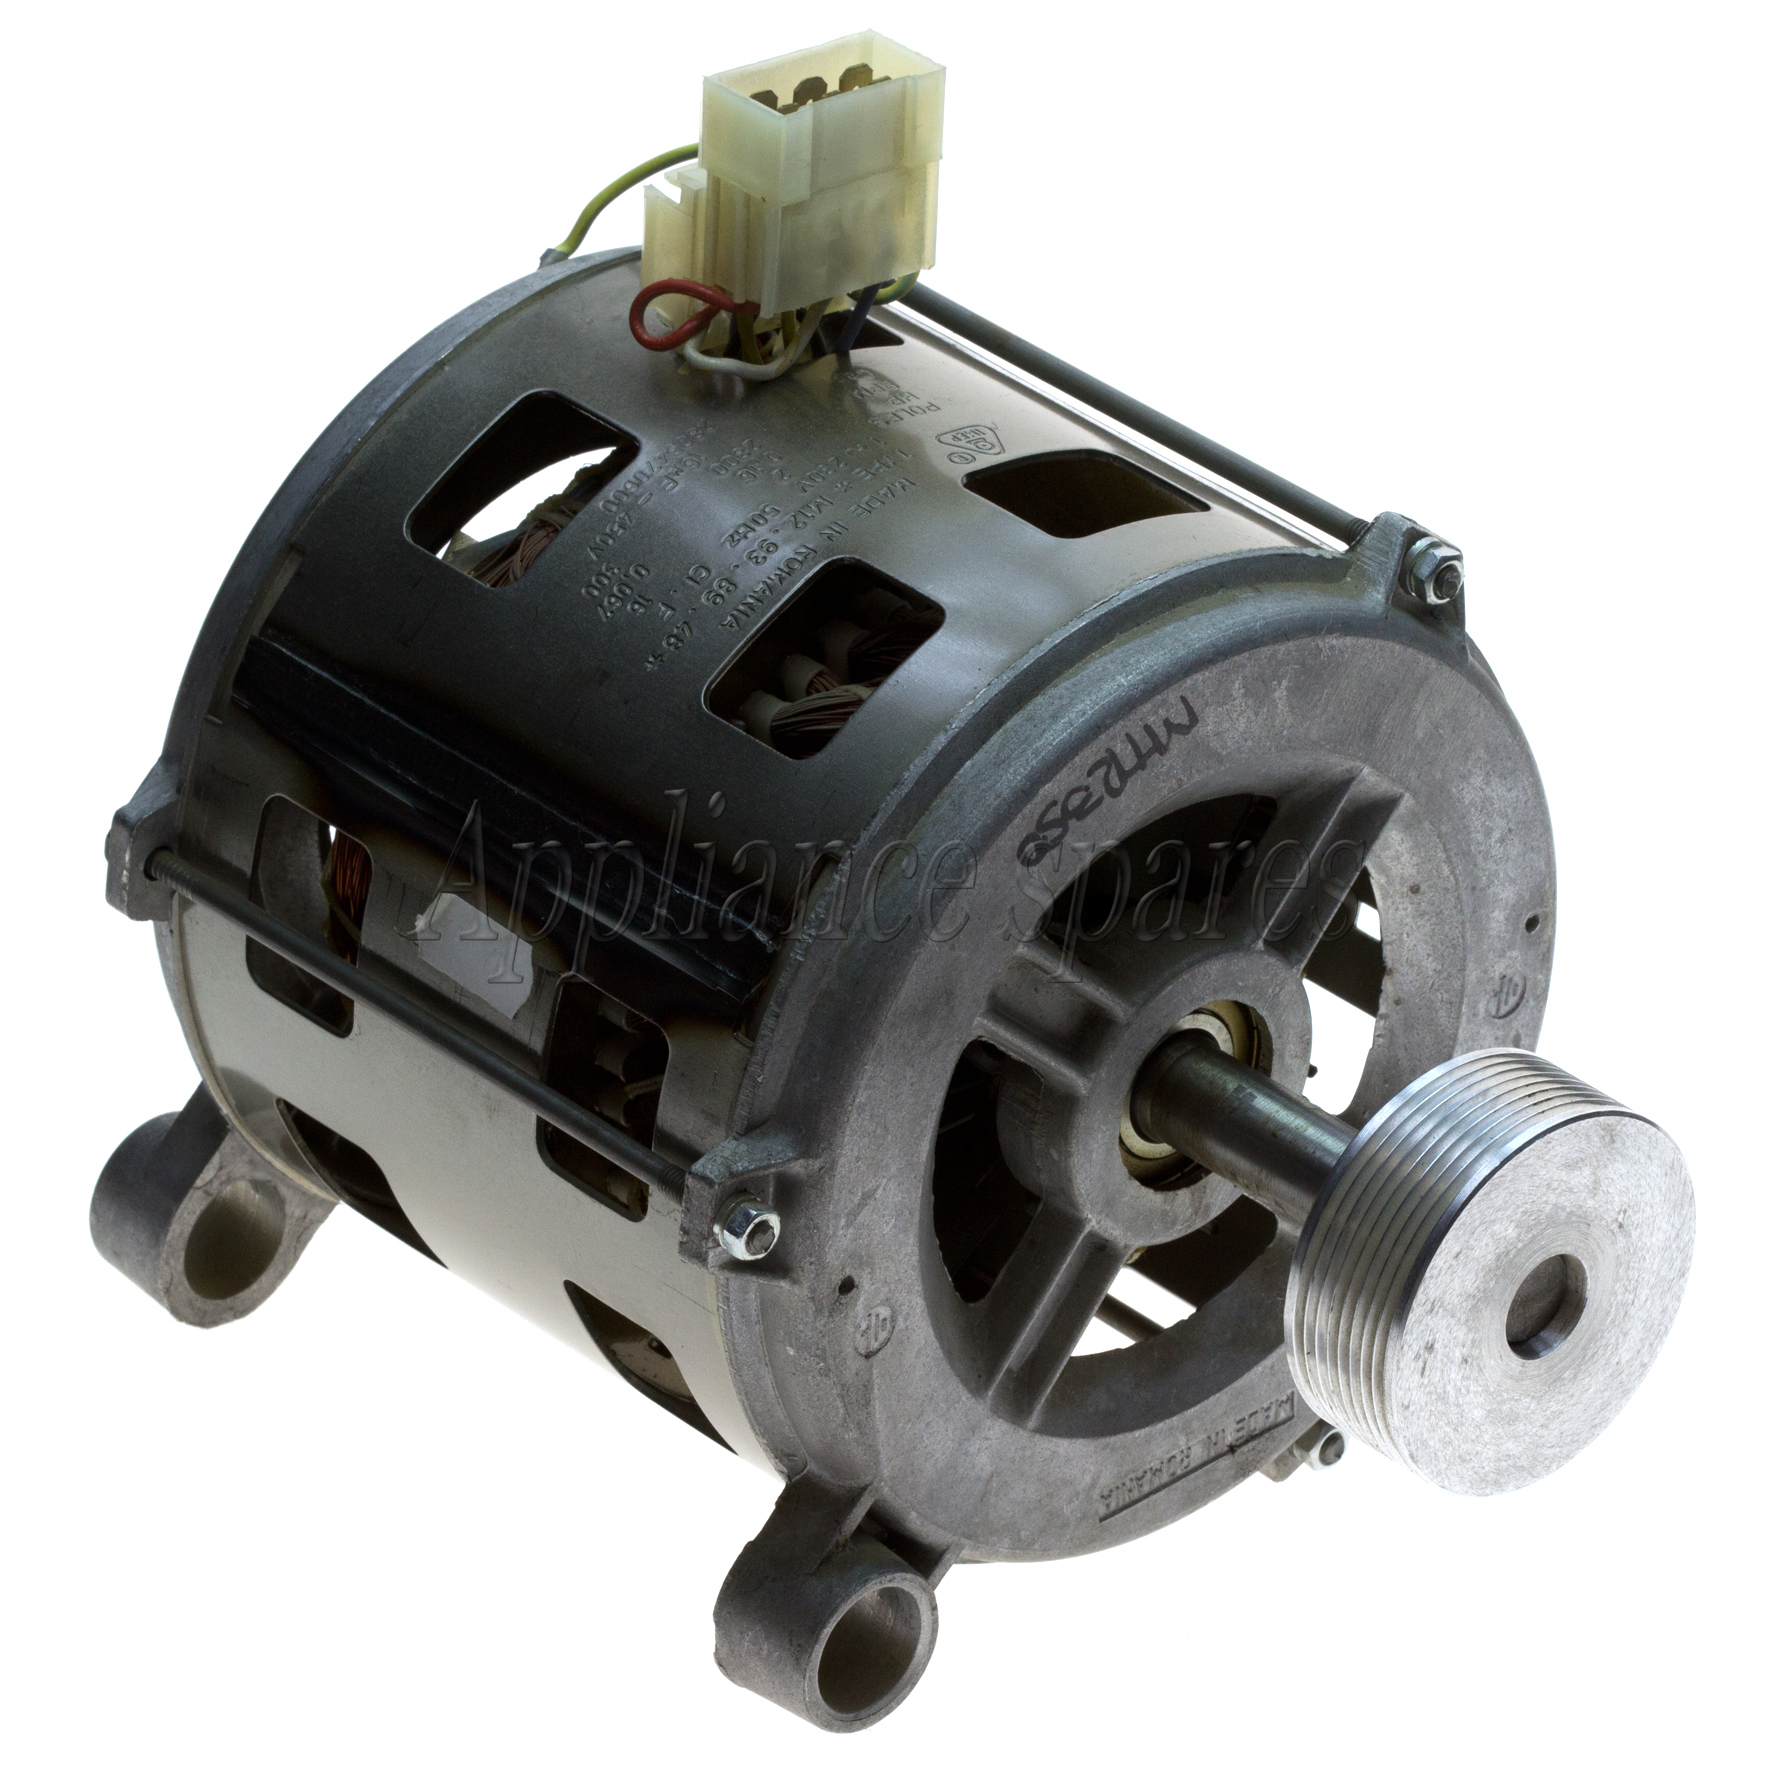 defy front loader washing machine main motor with 60mm